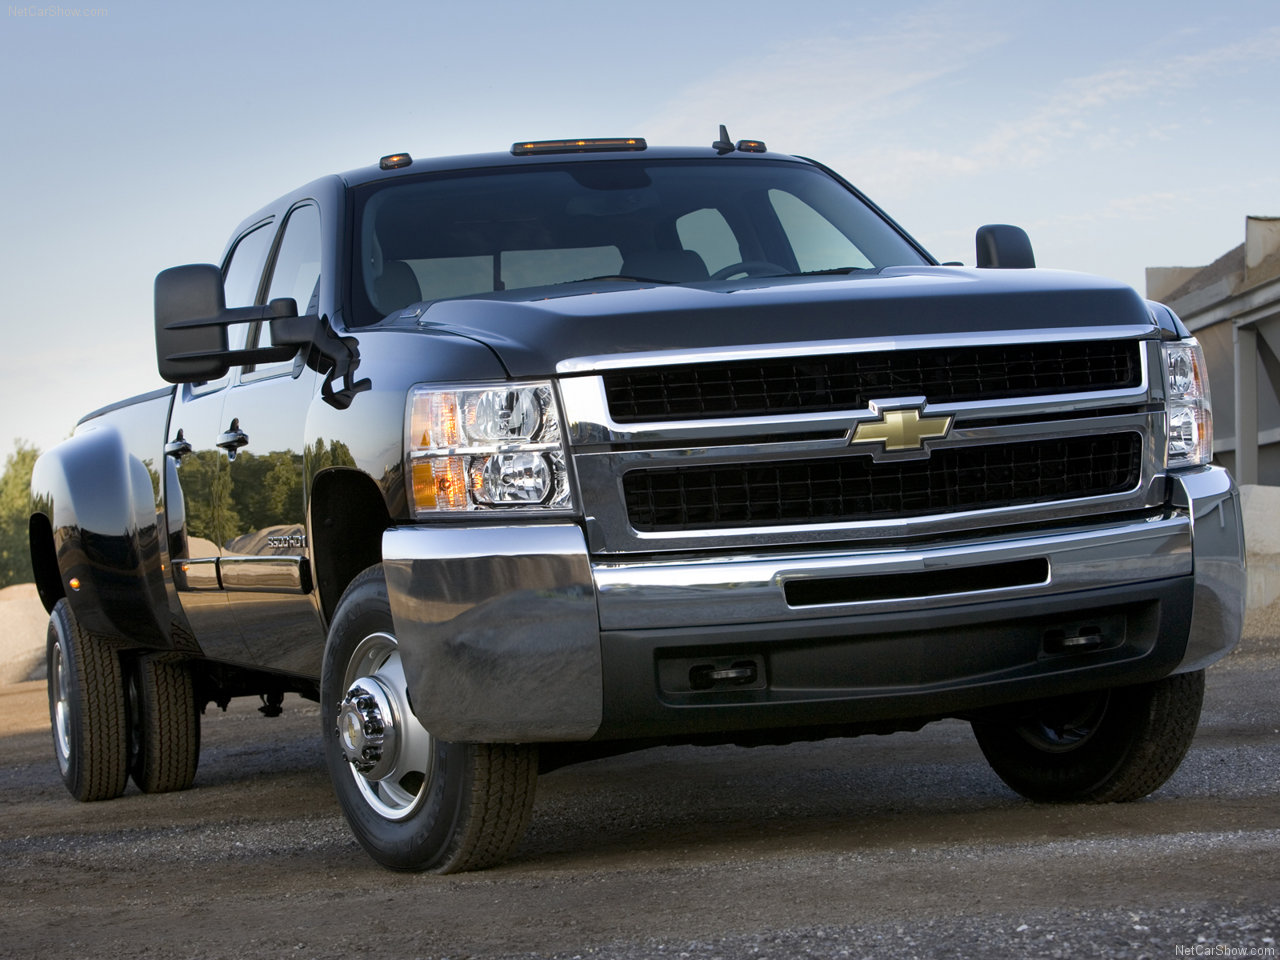 2016 Chevrolet Silverado C 3500 Hd Crew Cab Dually | Autos Post